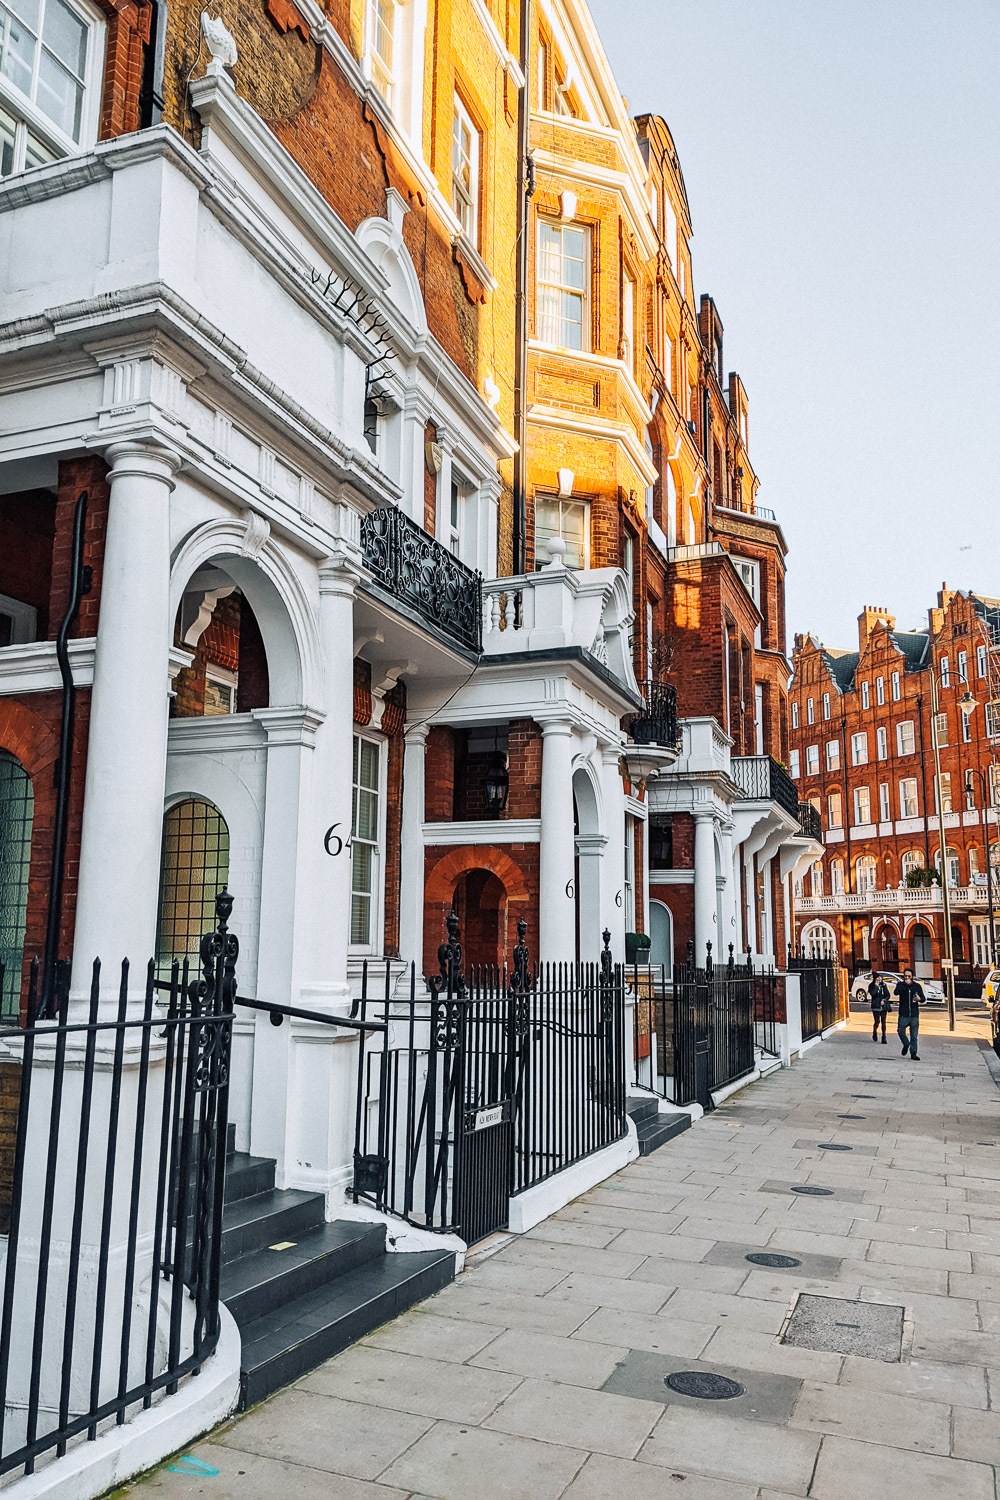 Georgian and Regency architecture in Kensington, London